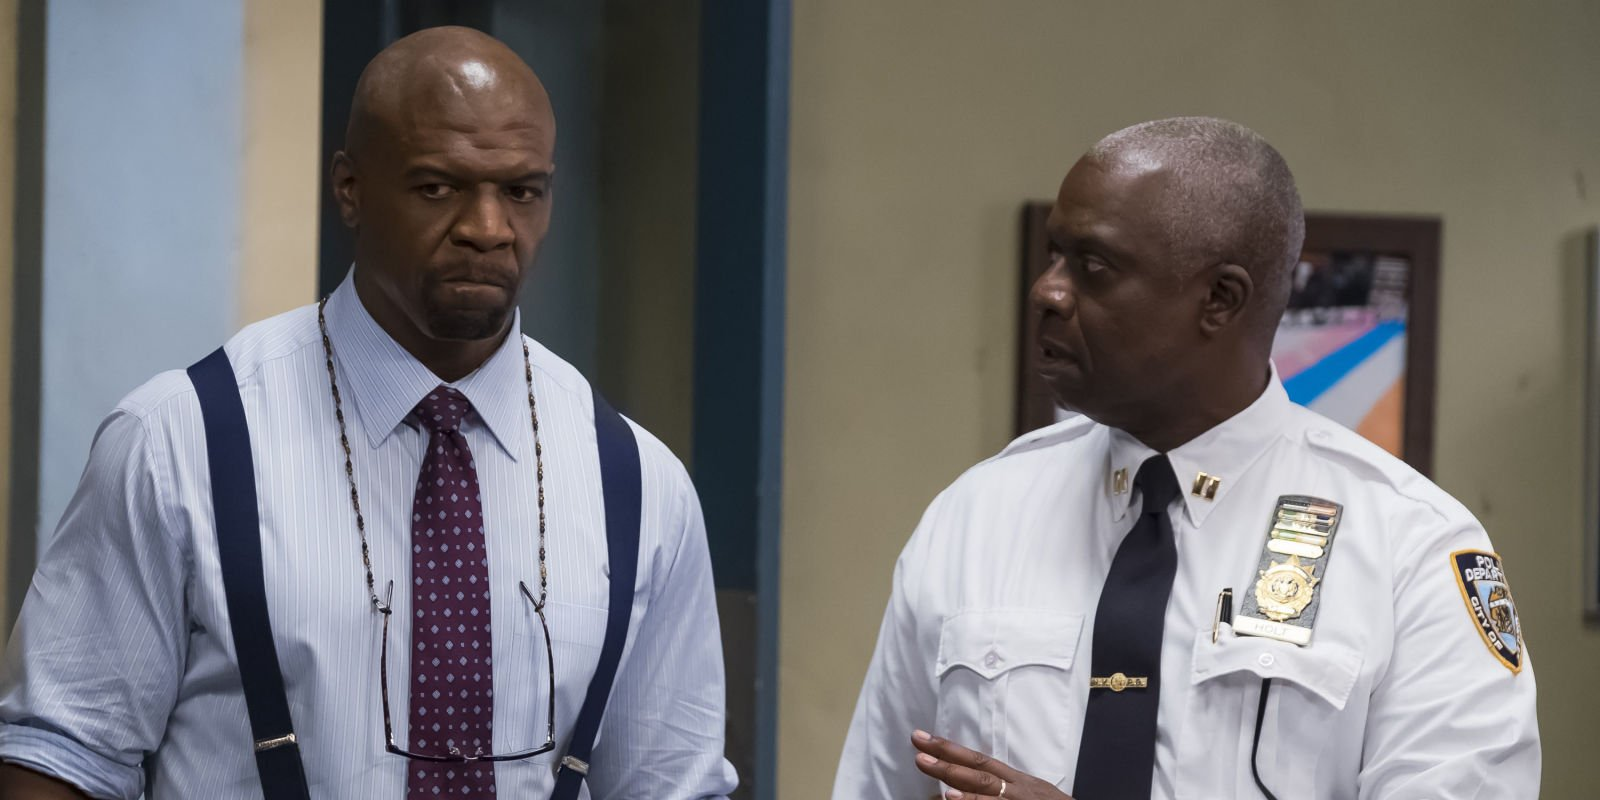 Brooklyn Nine-Nine might have #MeToo storyline following Terry Crews' own real-life sexual assault